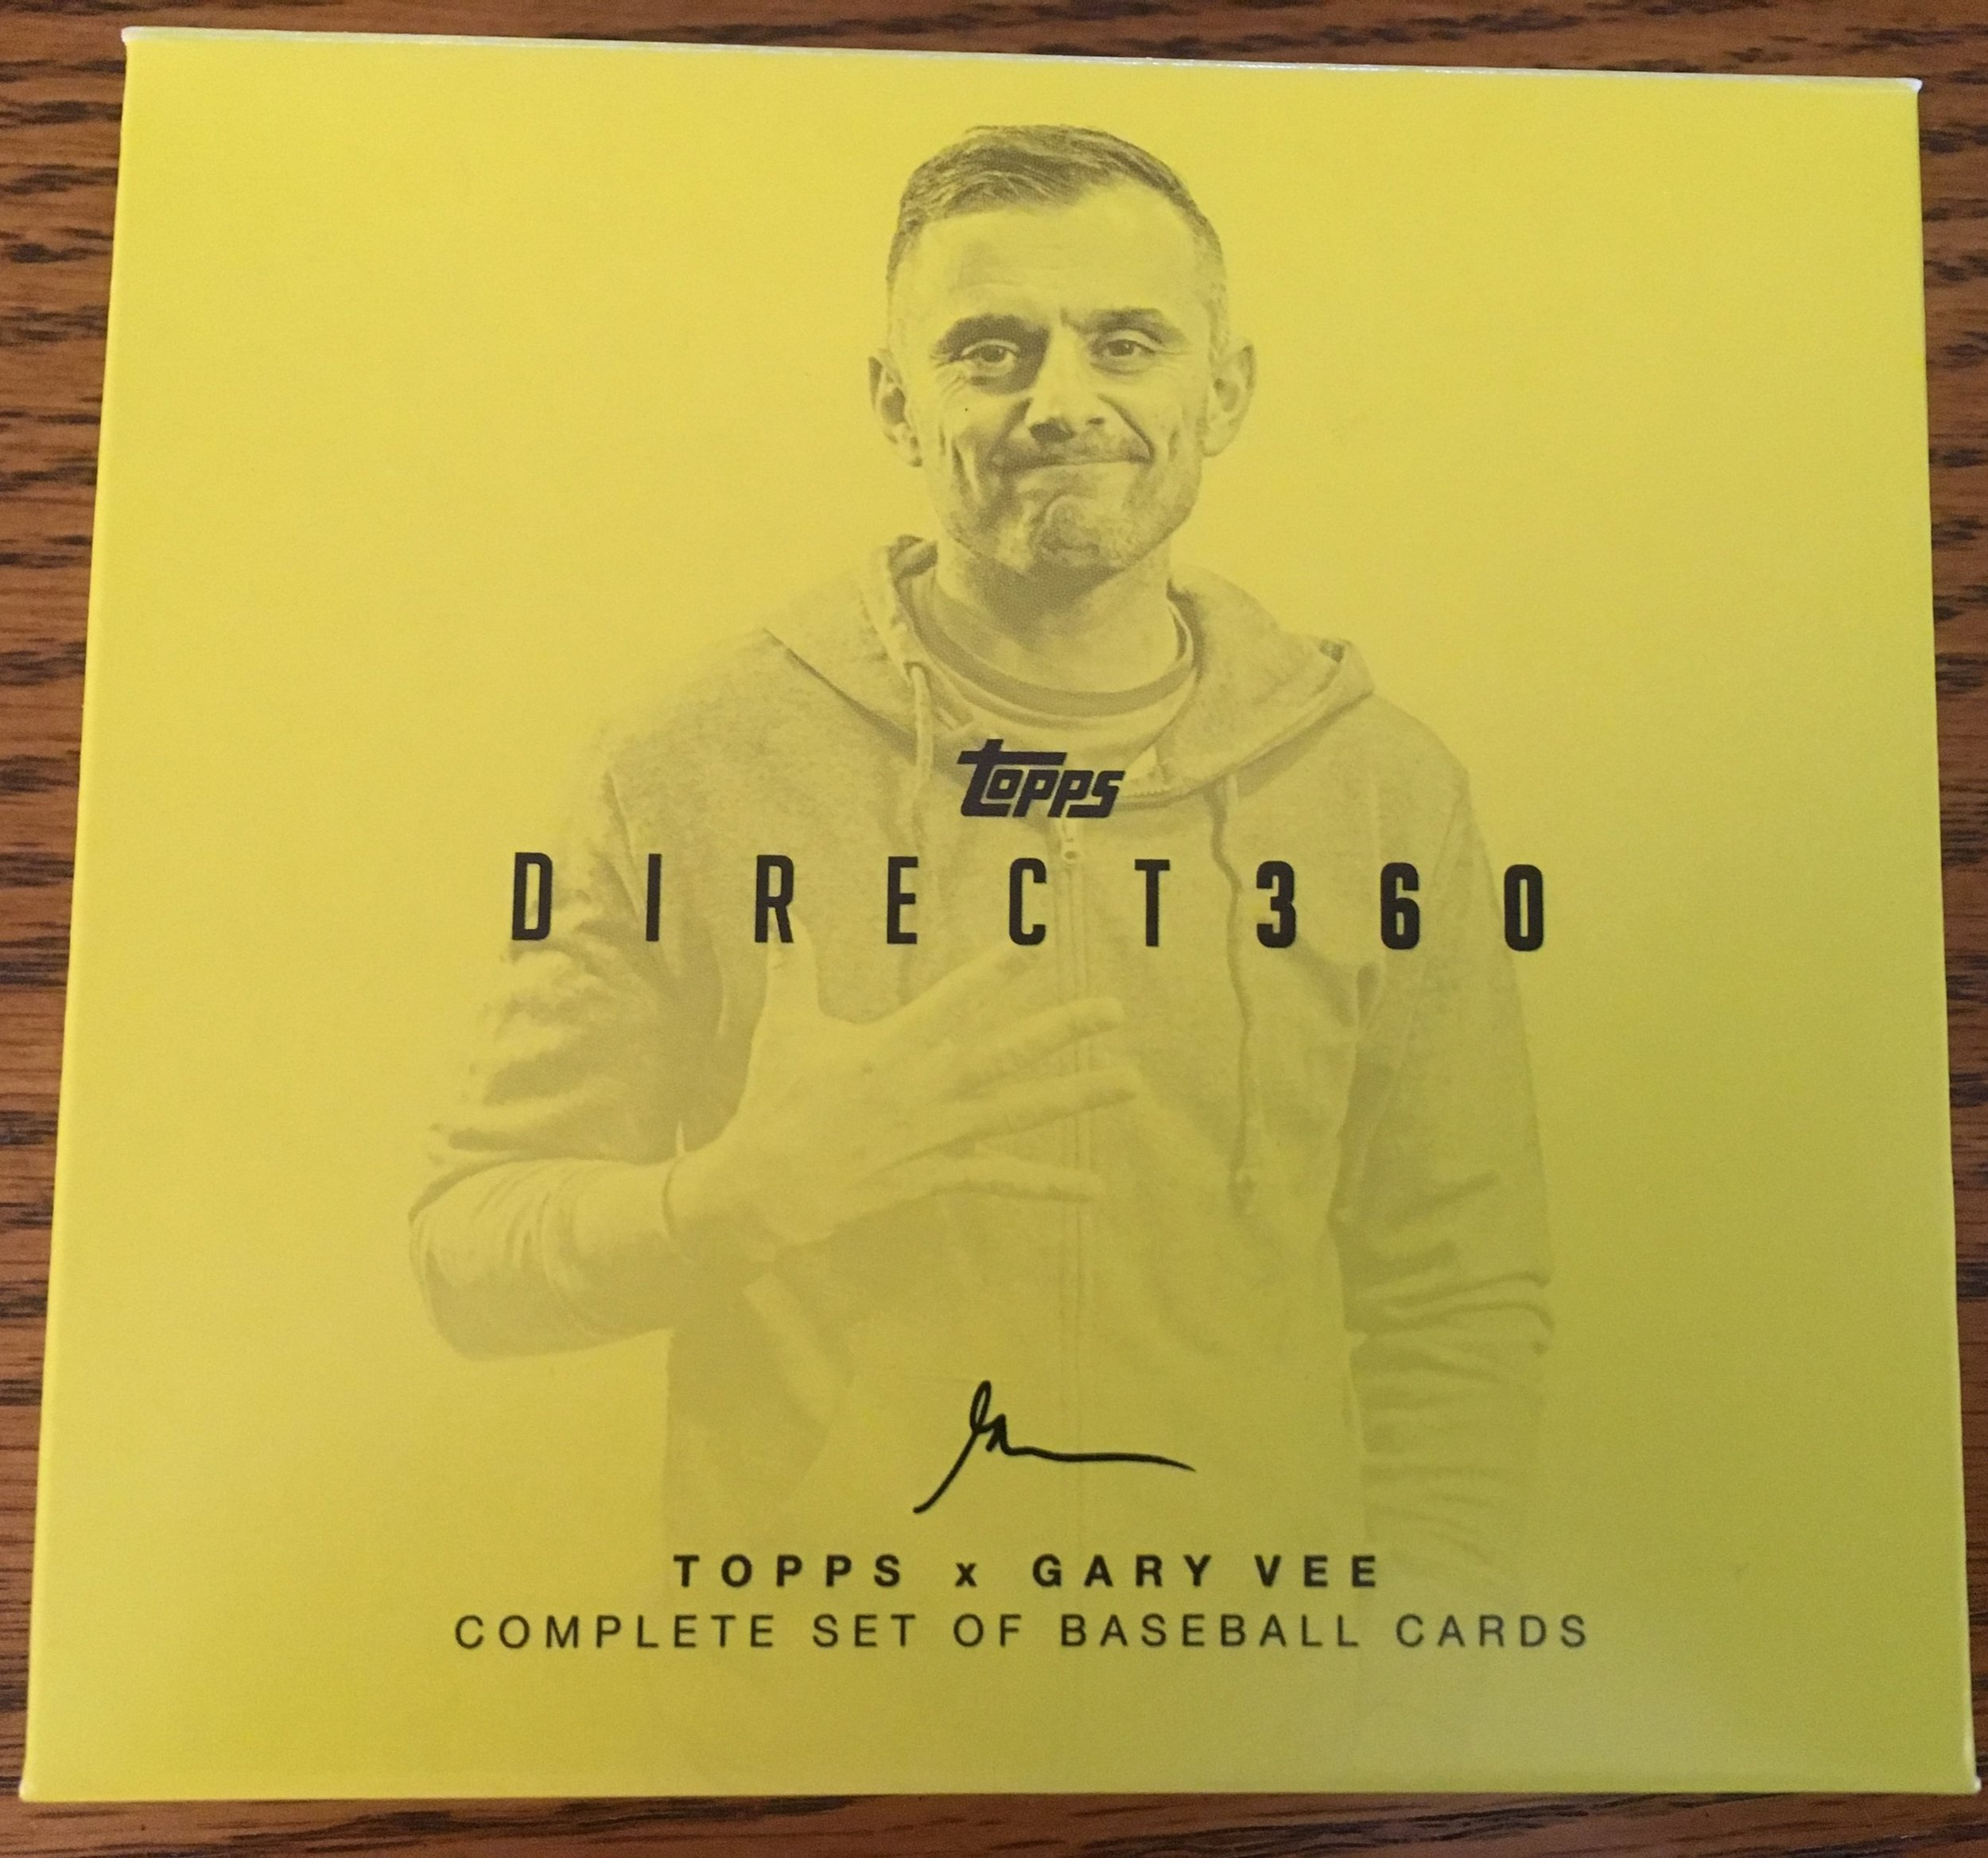 Topps-Direct-360-Gary-Vee.jpg